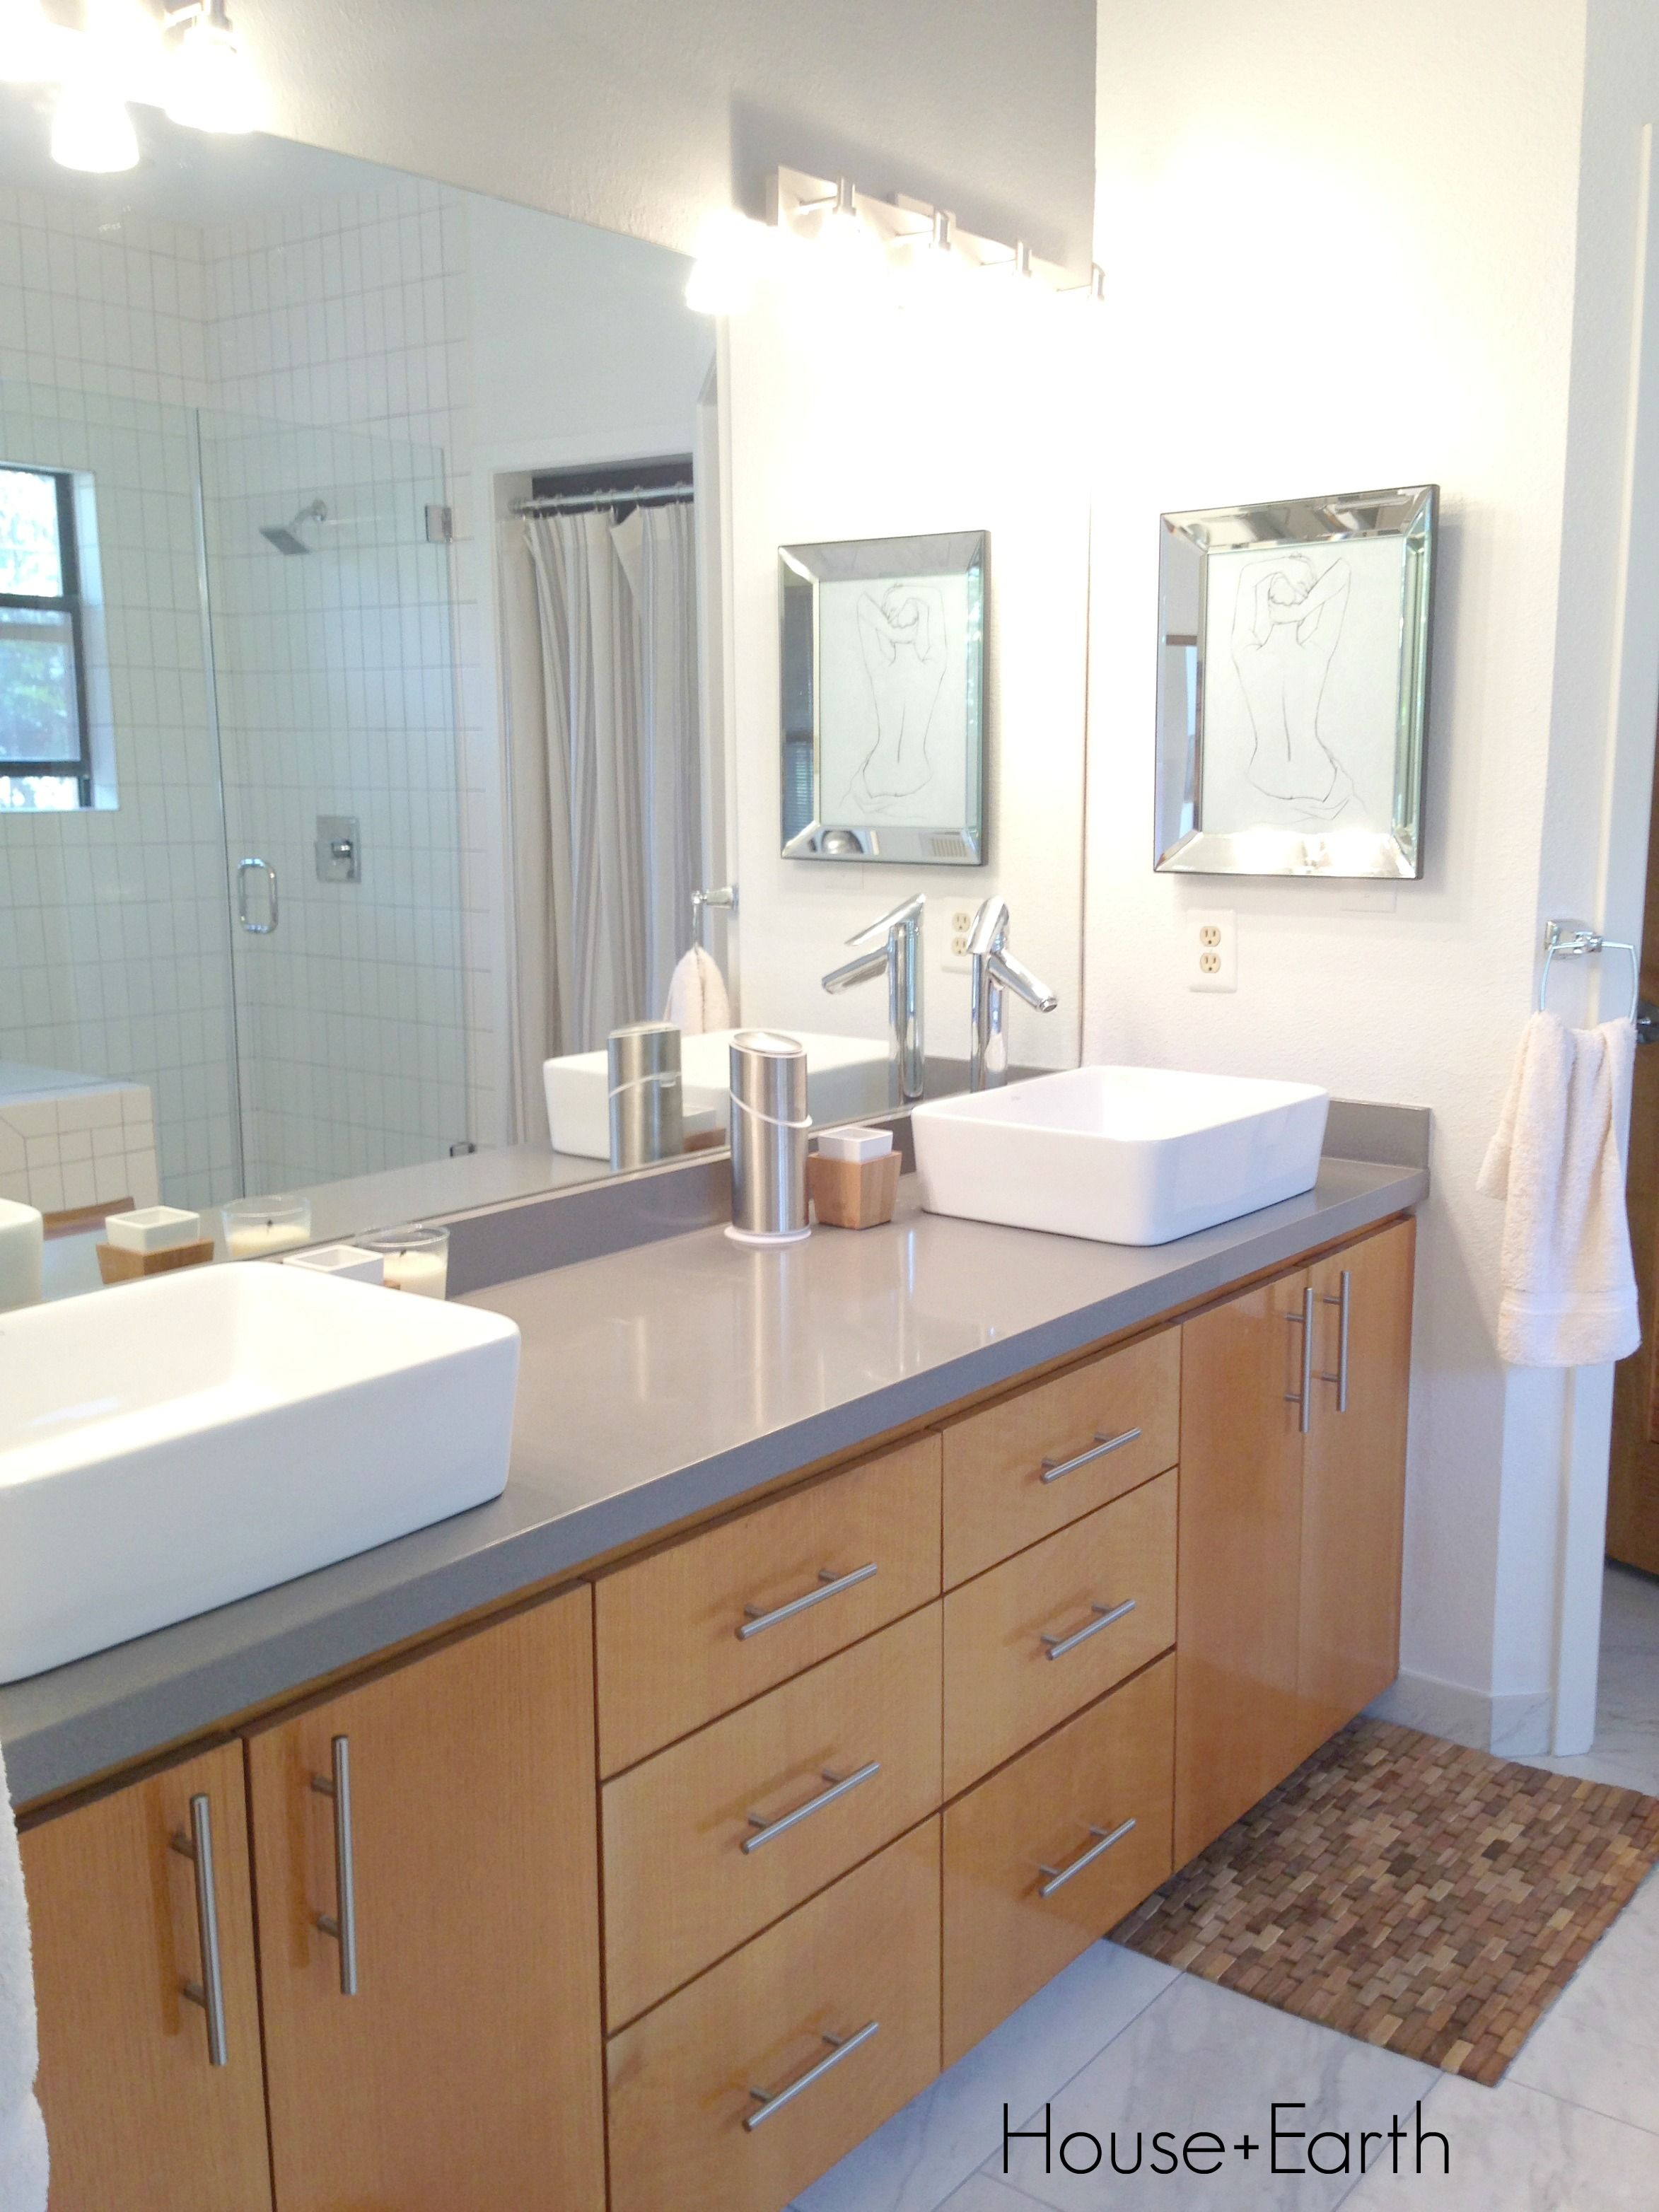 Photo Album For Website Bathroom Renovation Silestone Grey Expo counter top white vessel sinks u